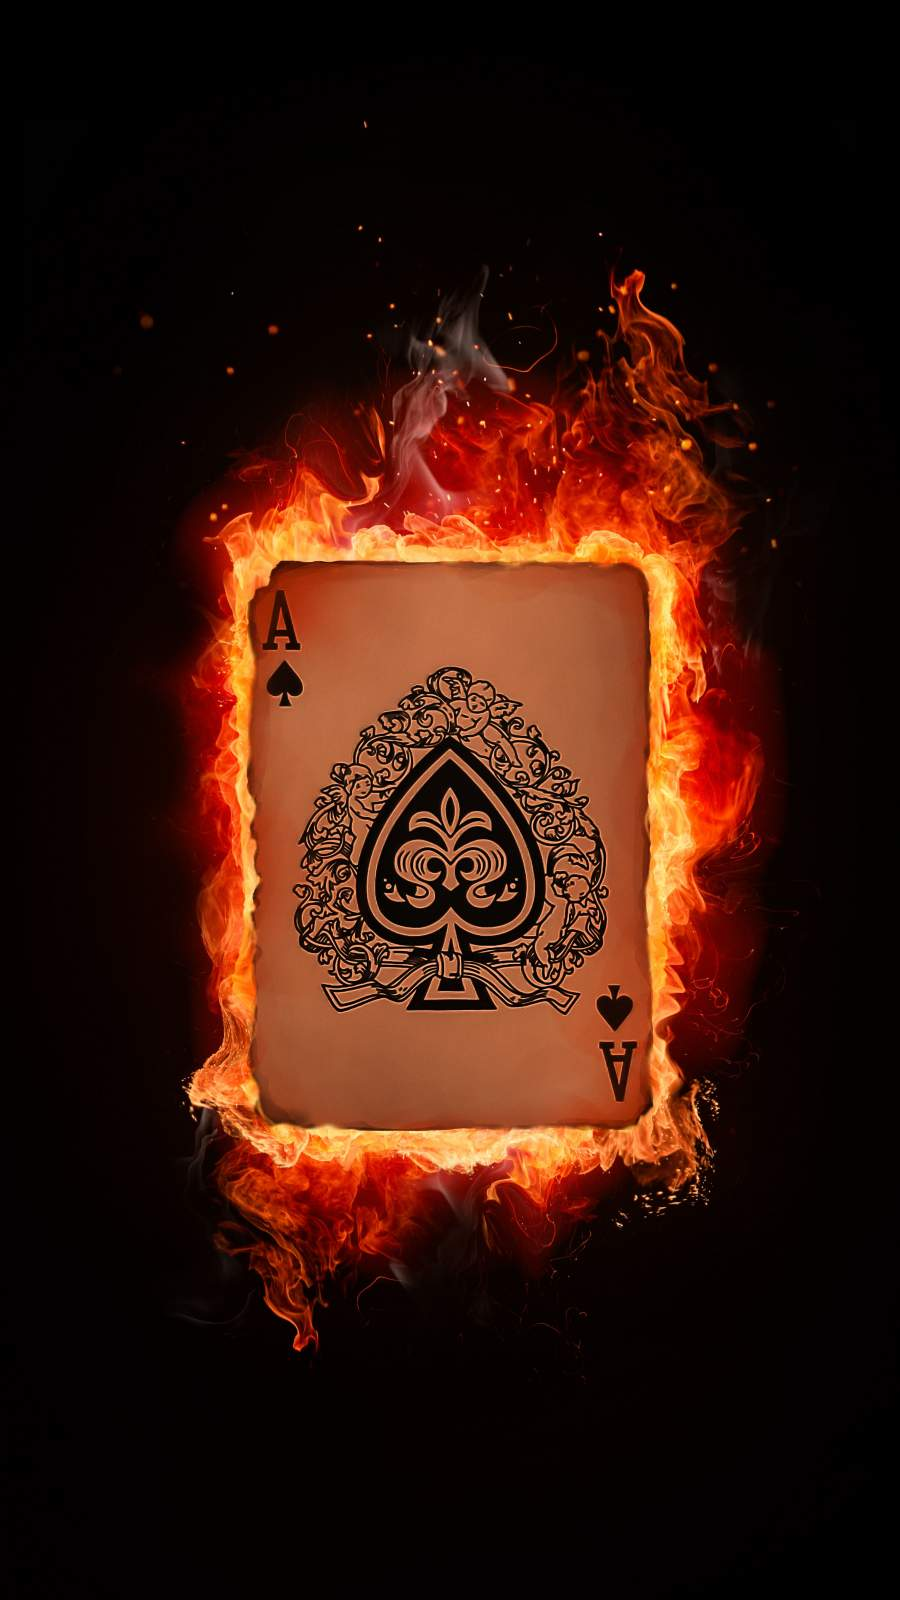 Ace Card iPhone Wallpaper